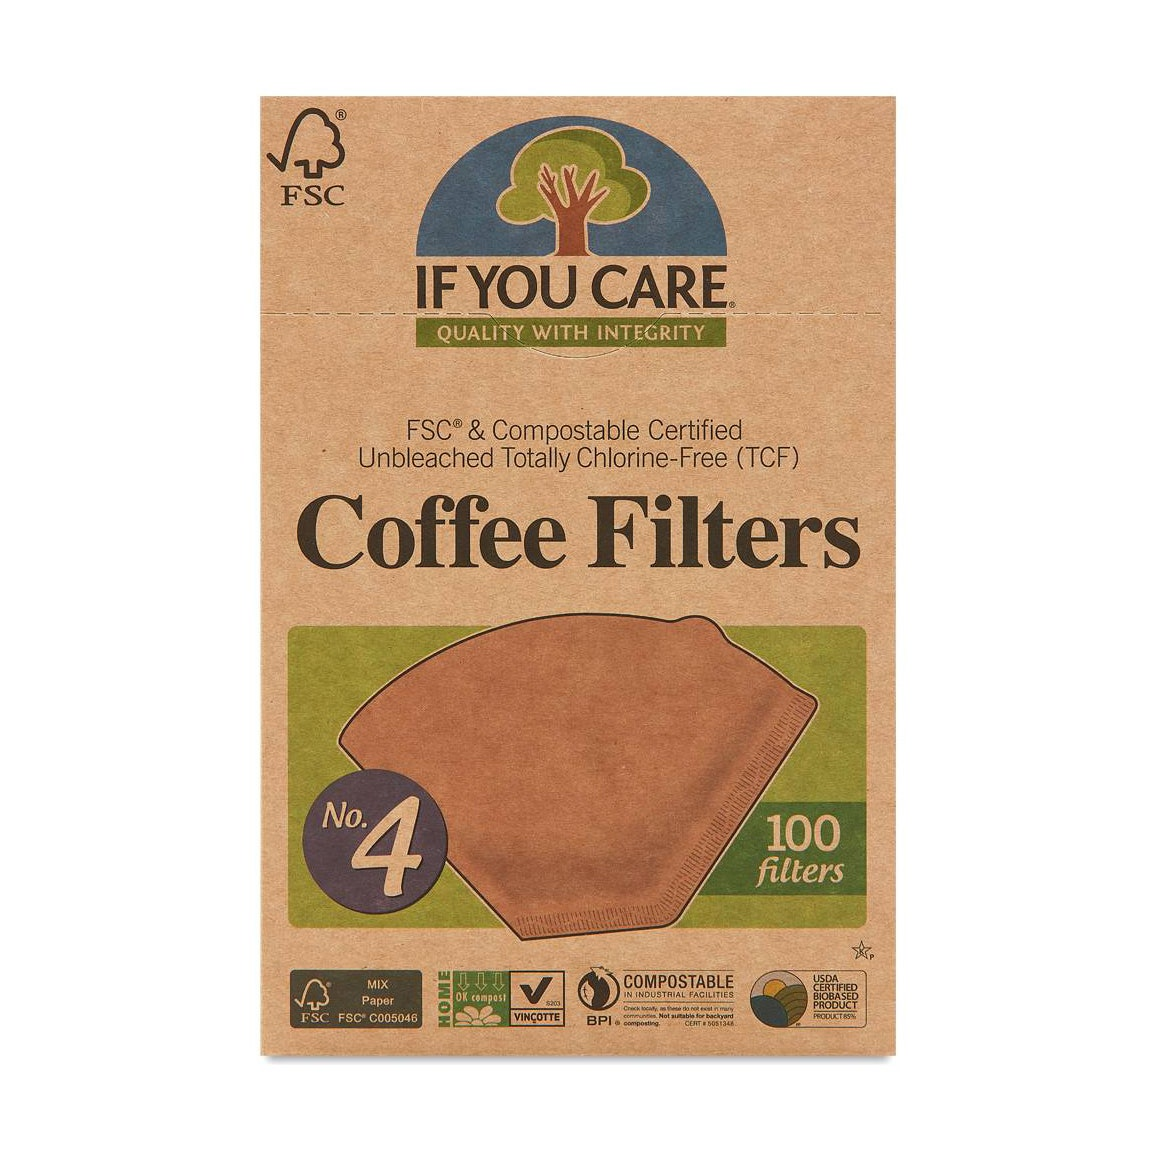 brown box with coffee filters